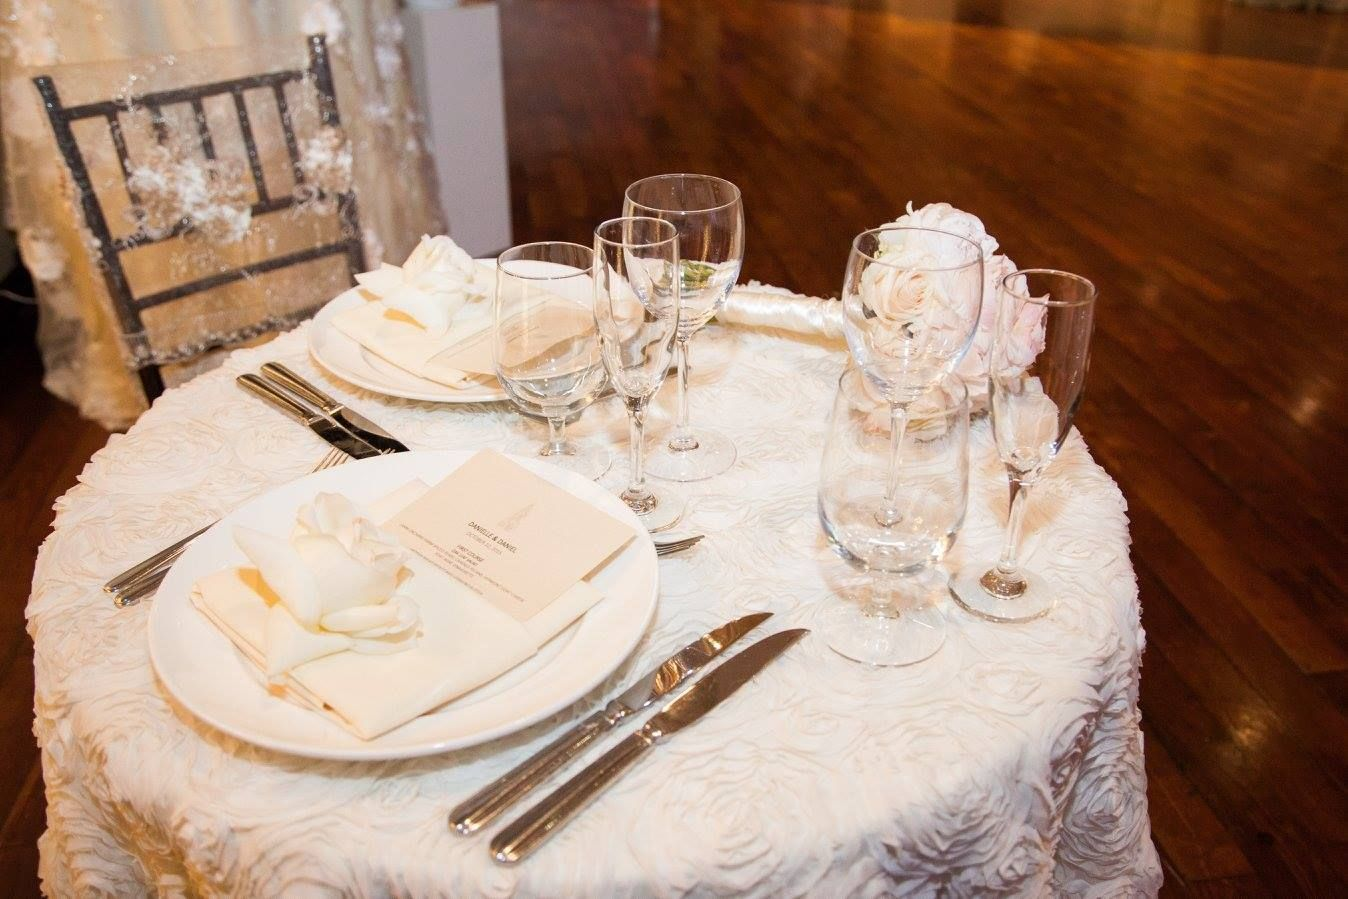 Table for two! All white wedding details- bride and grooms seats